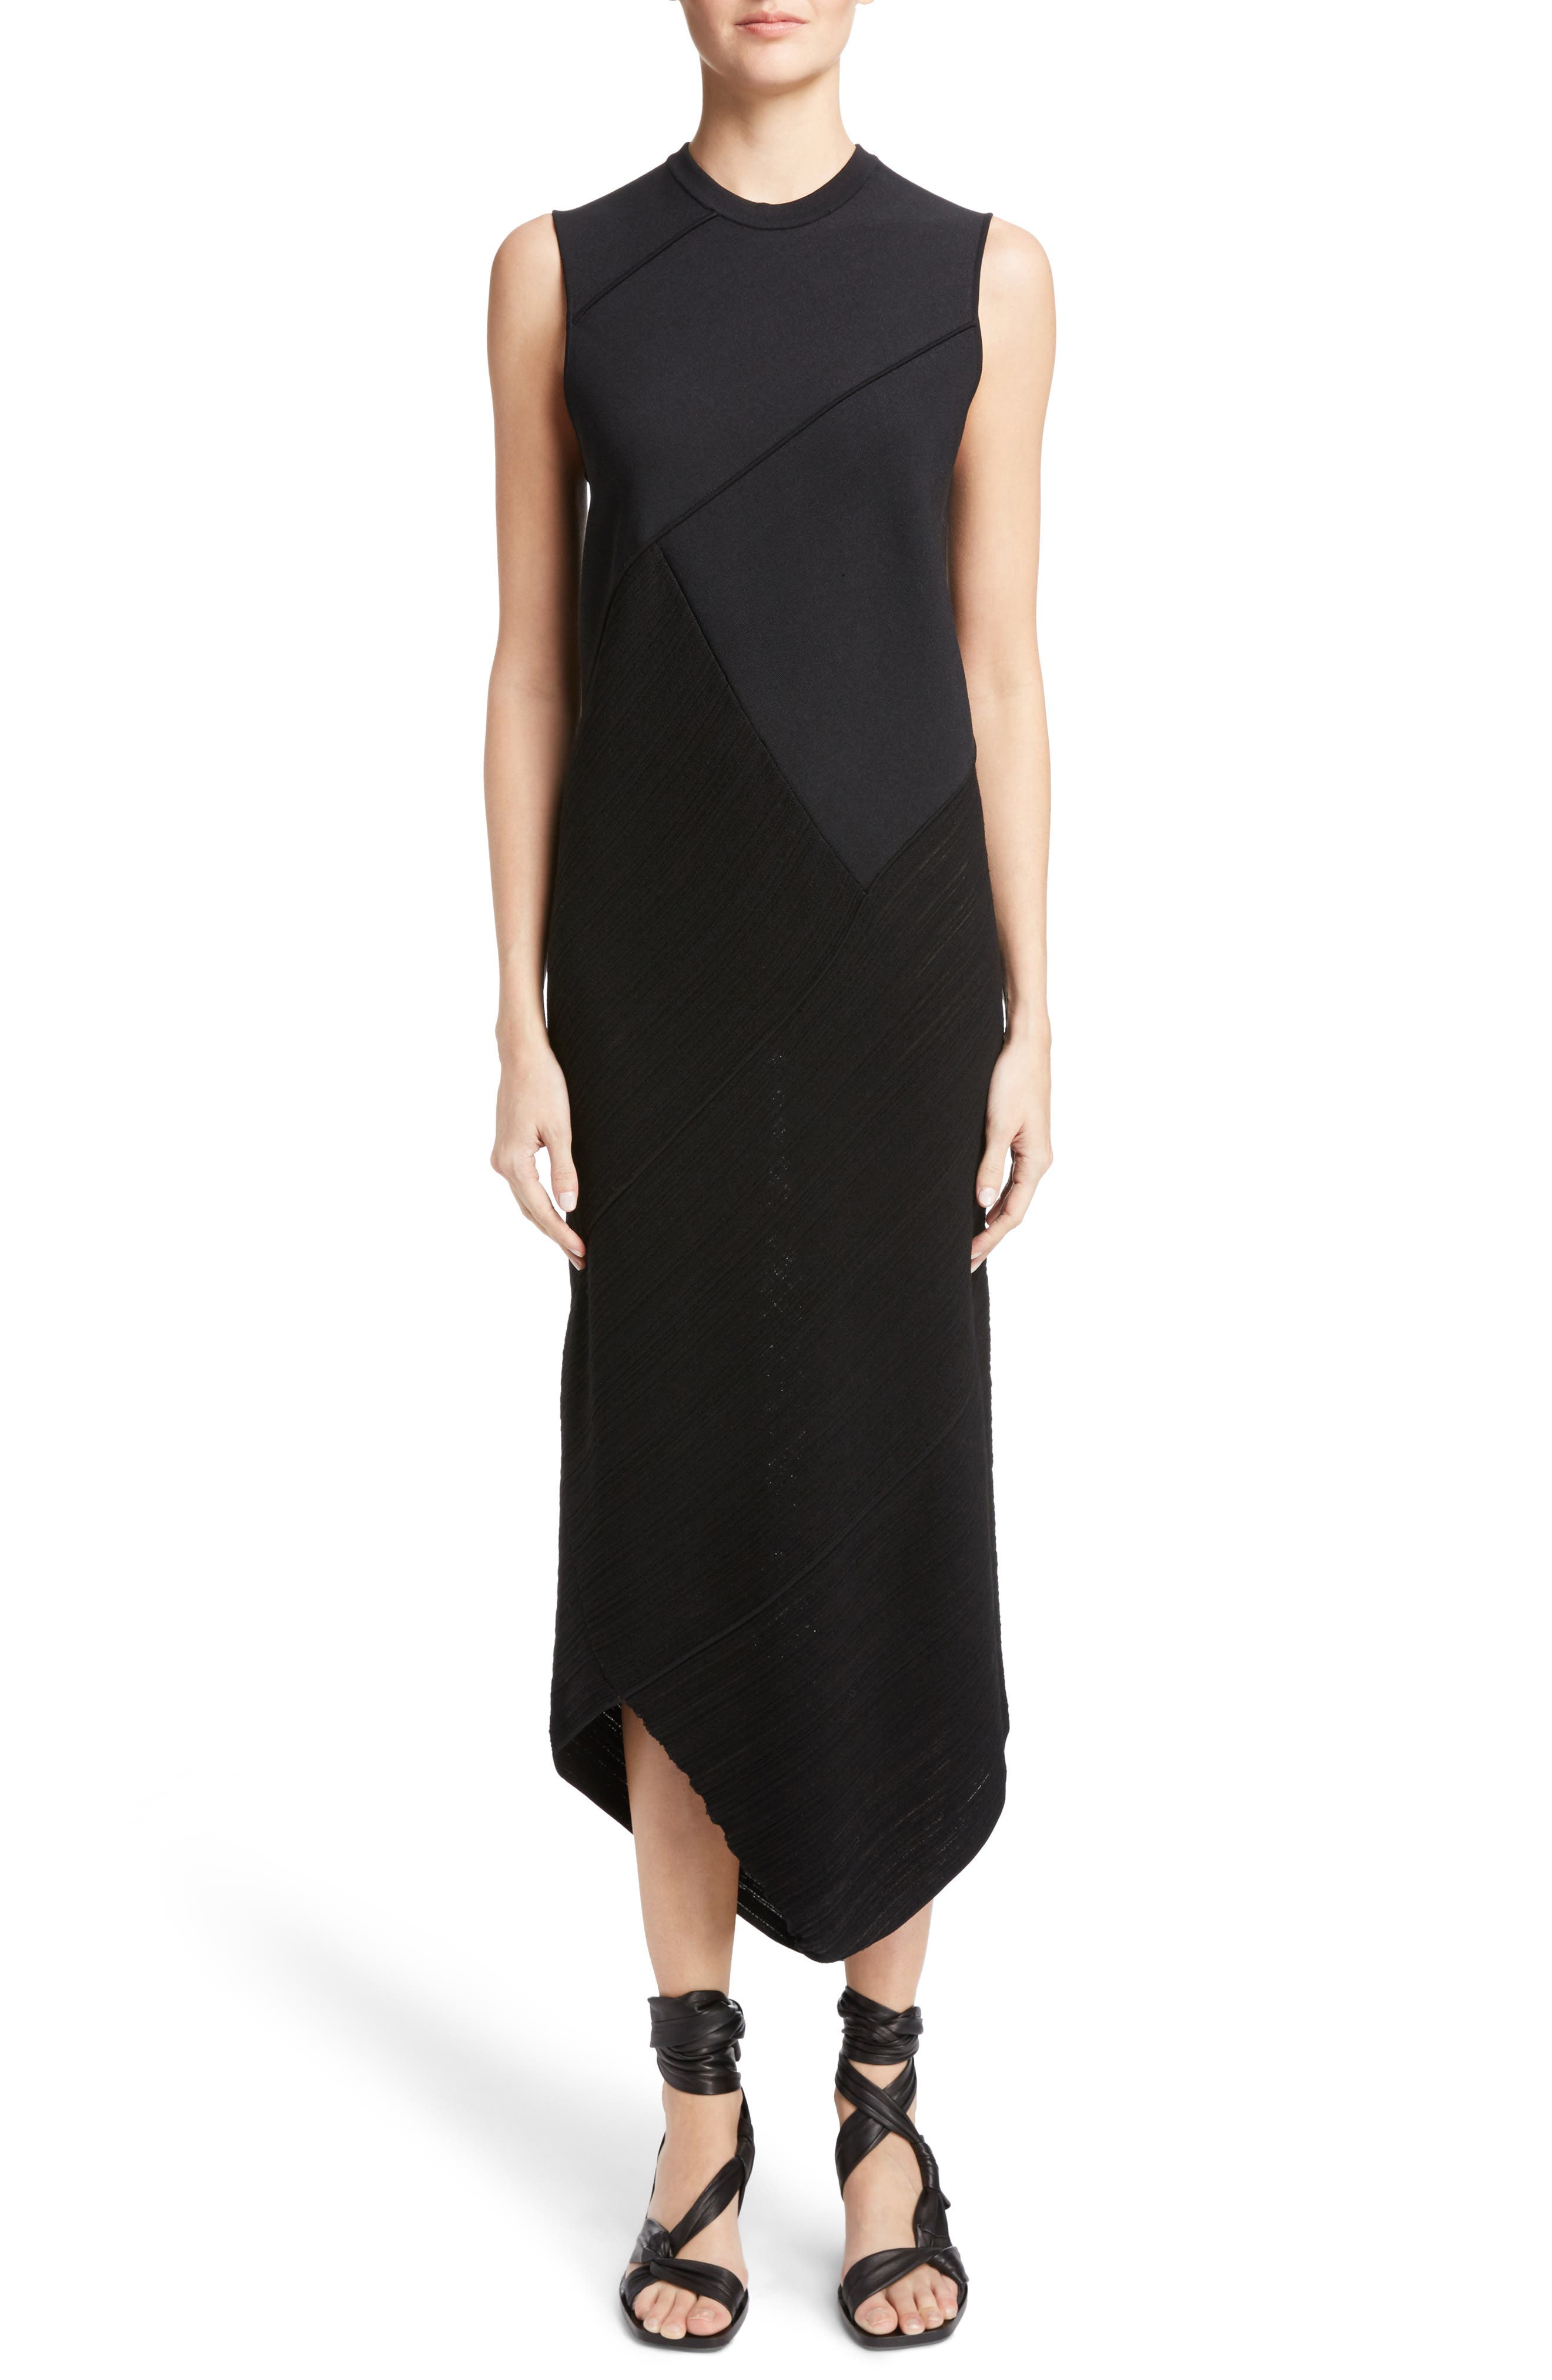 Alternate Image 1 Selected - Proenza Schouler Asymmetrical Spiral Knit Dress